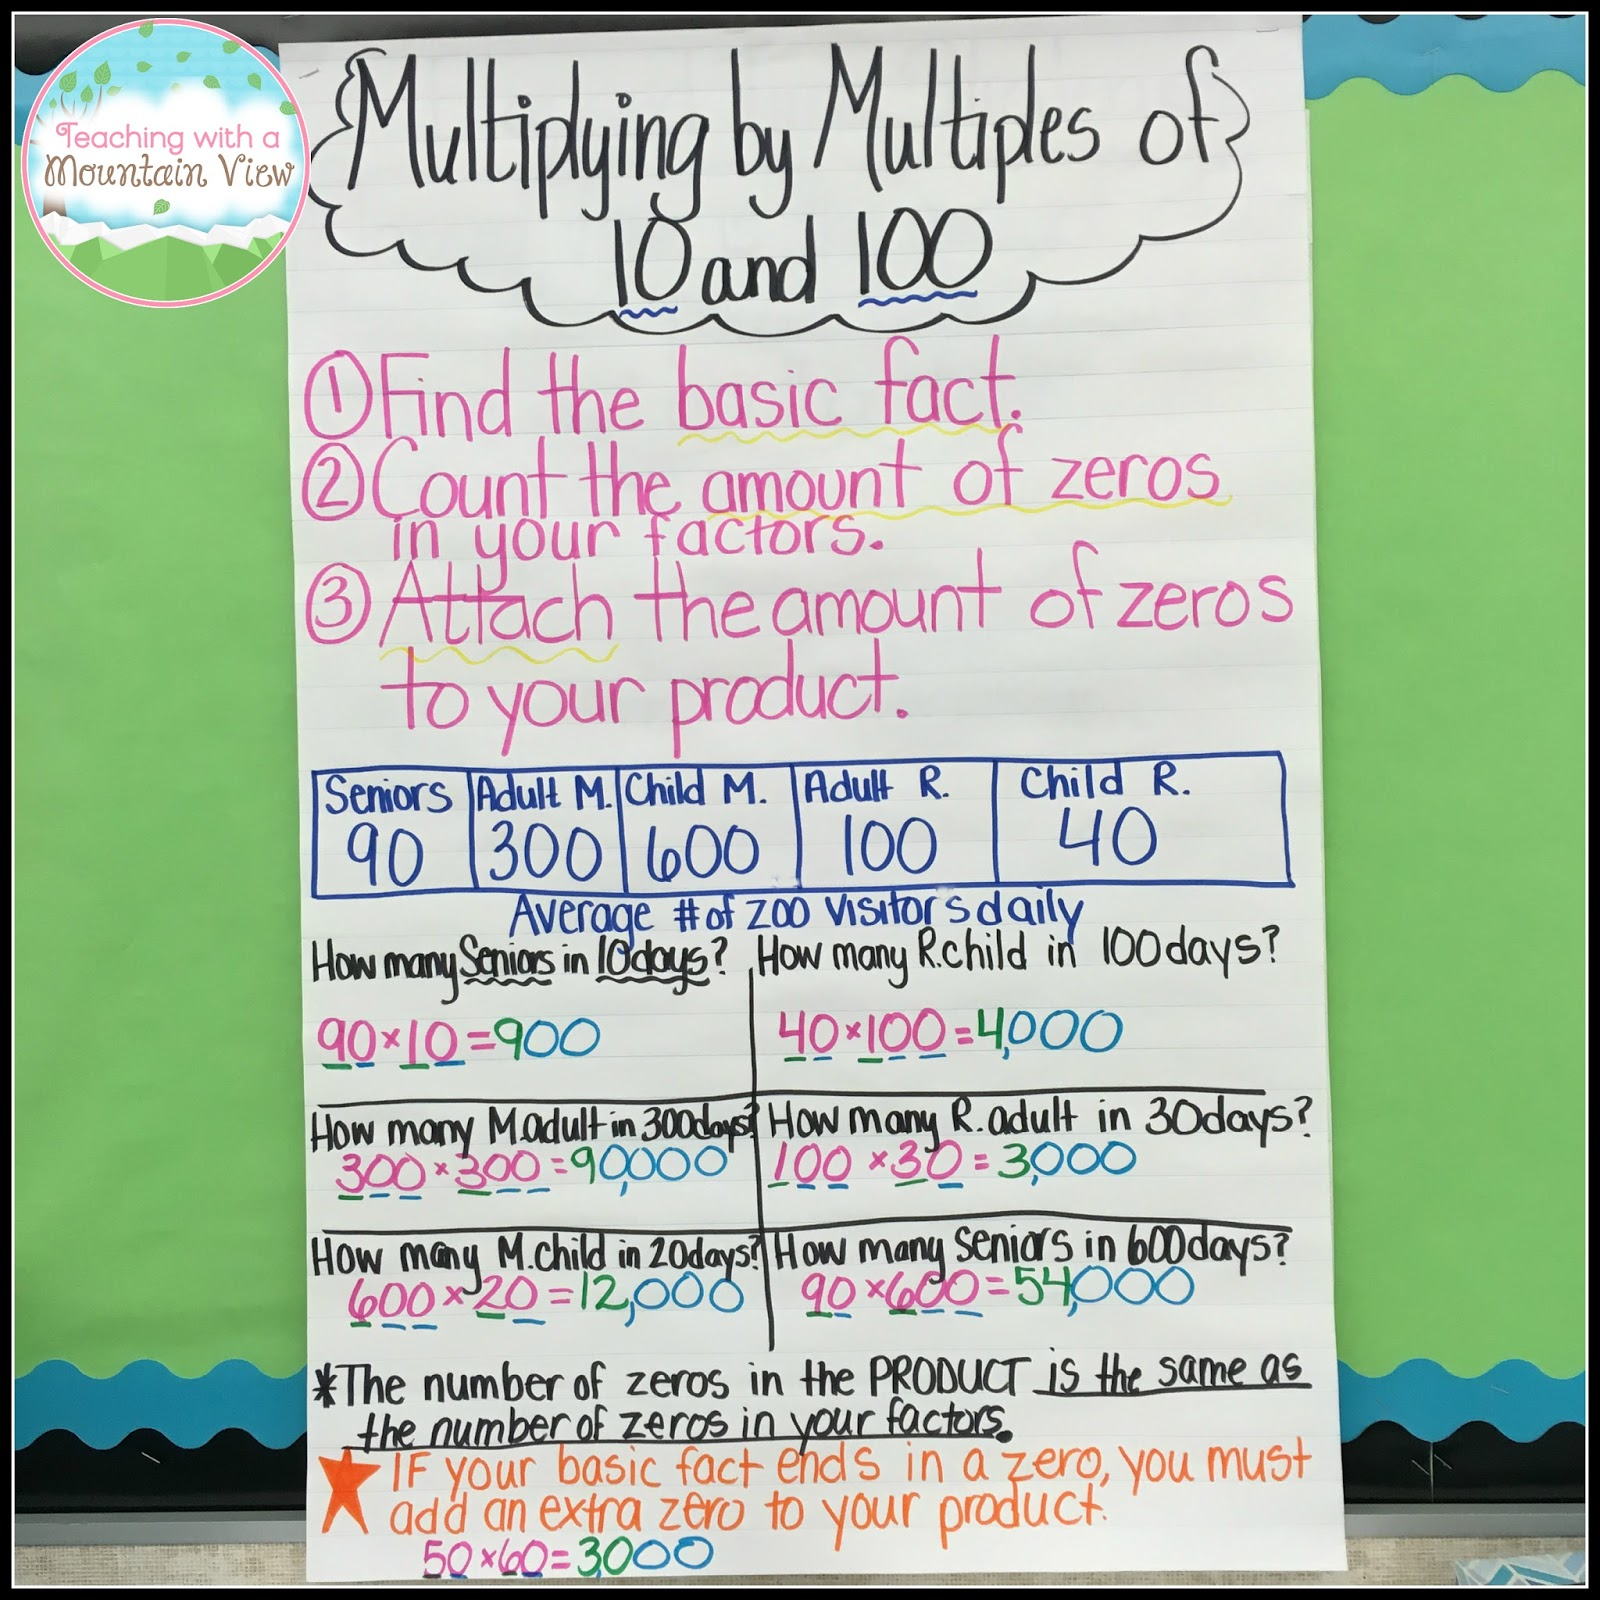 Teaching with a mountain view more multiplication resources and ideas here is the anchor chart i use to teach multiplying by multiples of 10 and 100 we do all of this together and then take notes via the notebook page below nvjuhfo Gallery